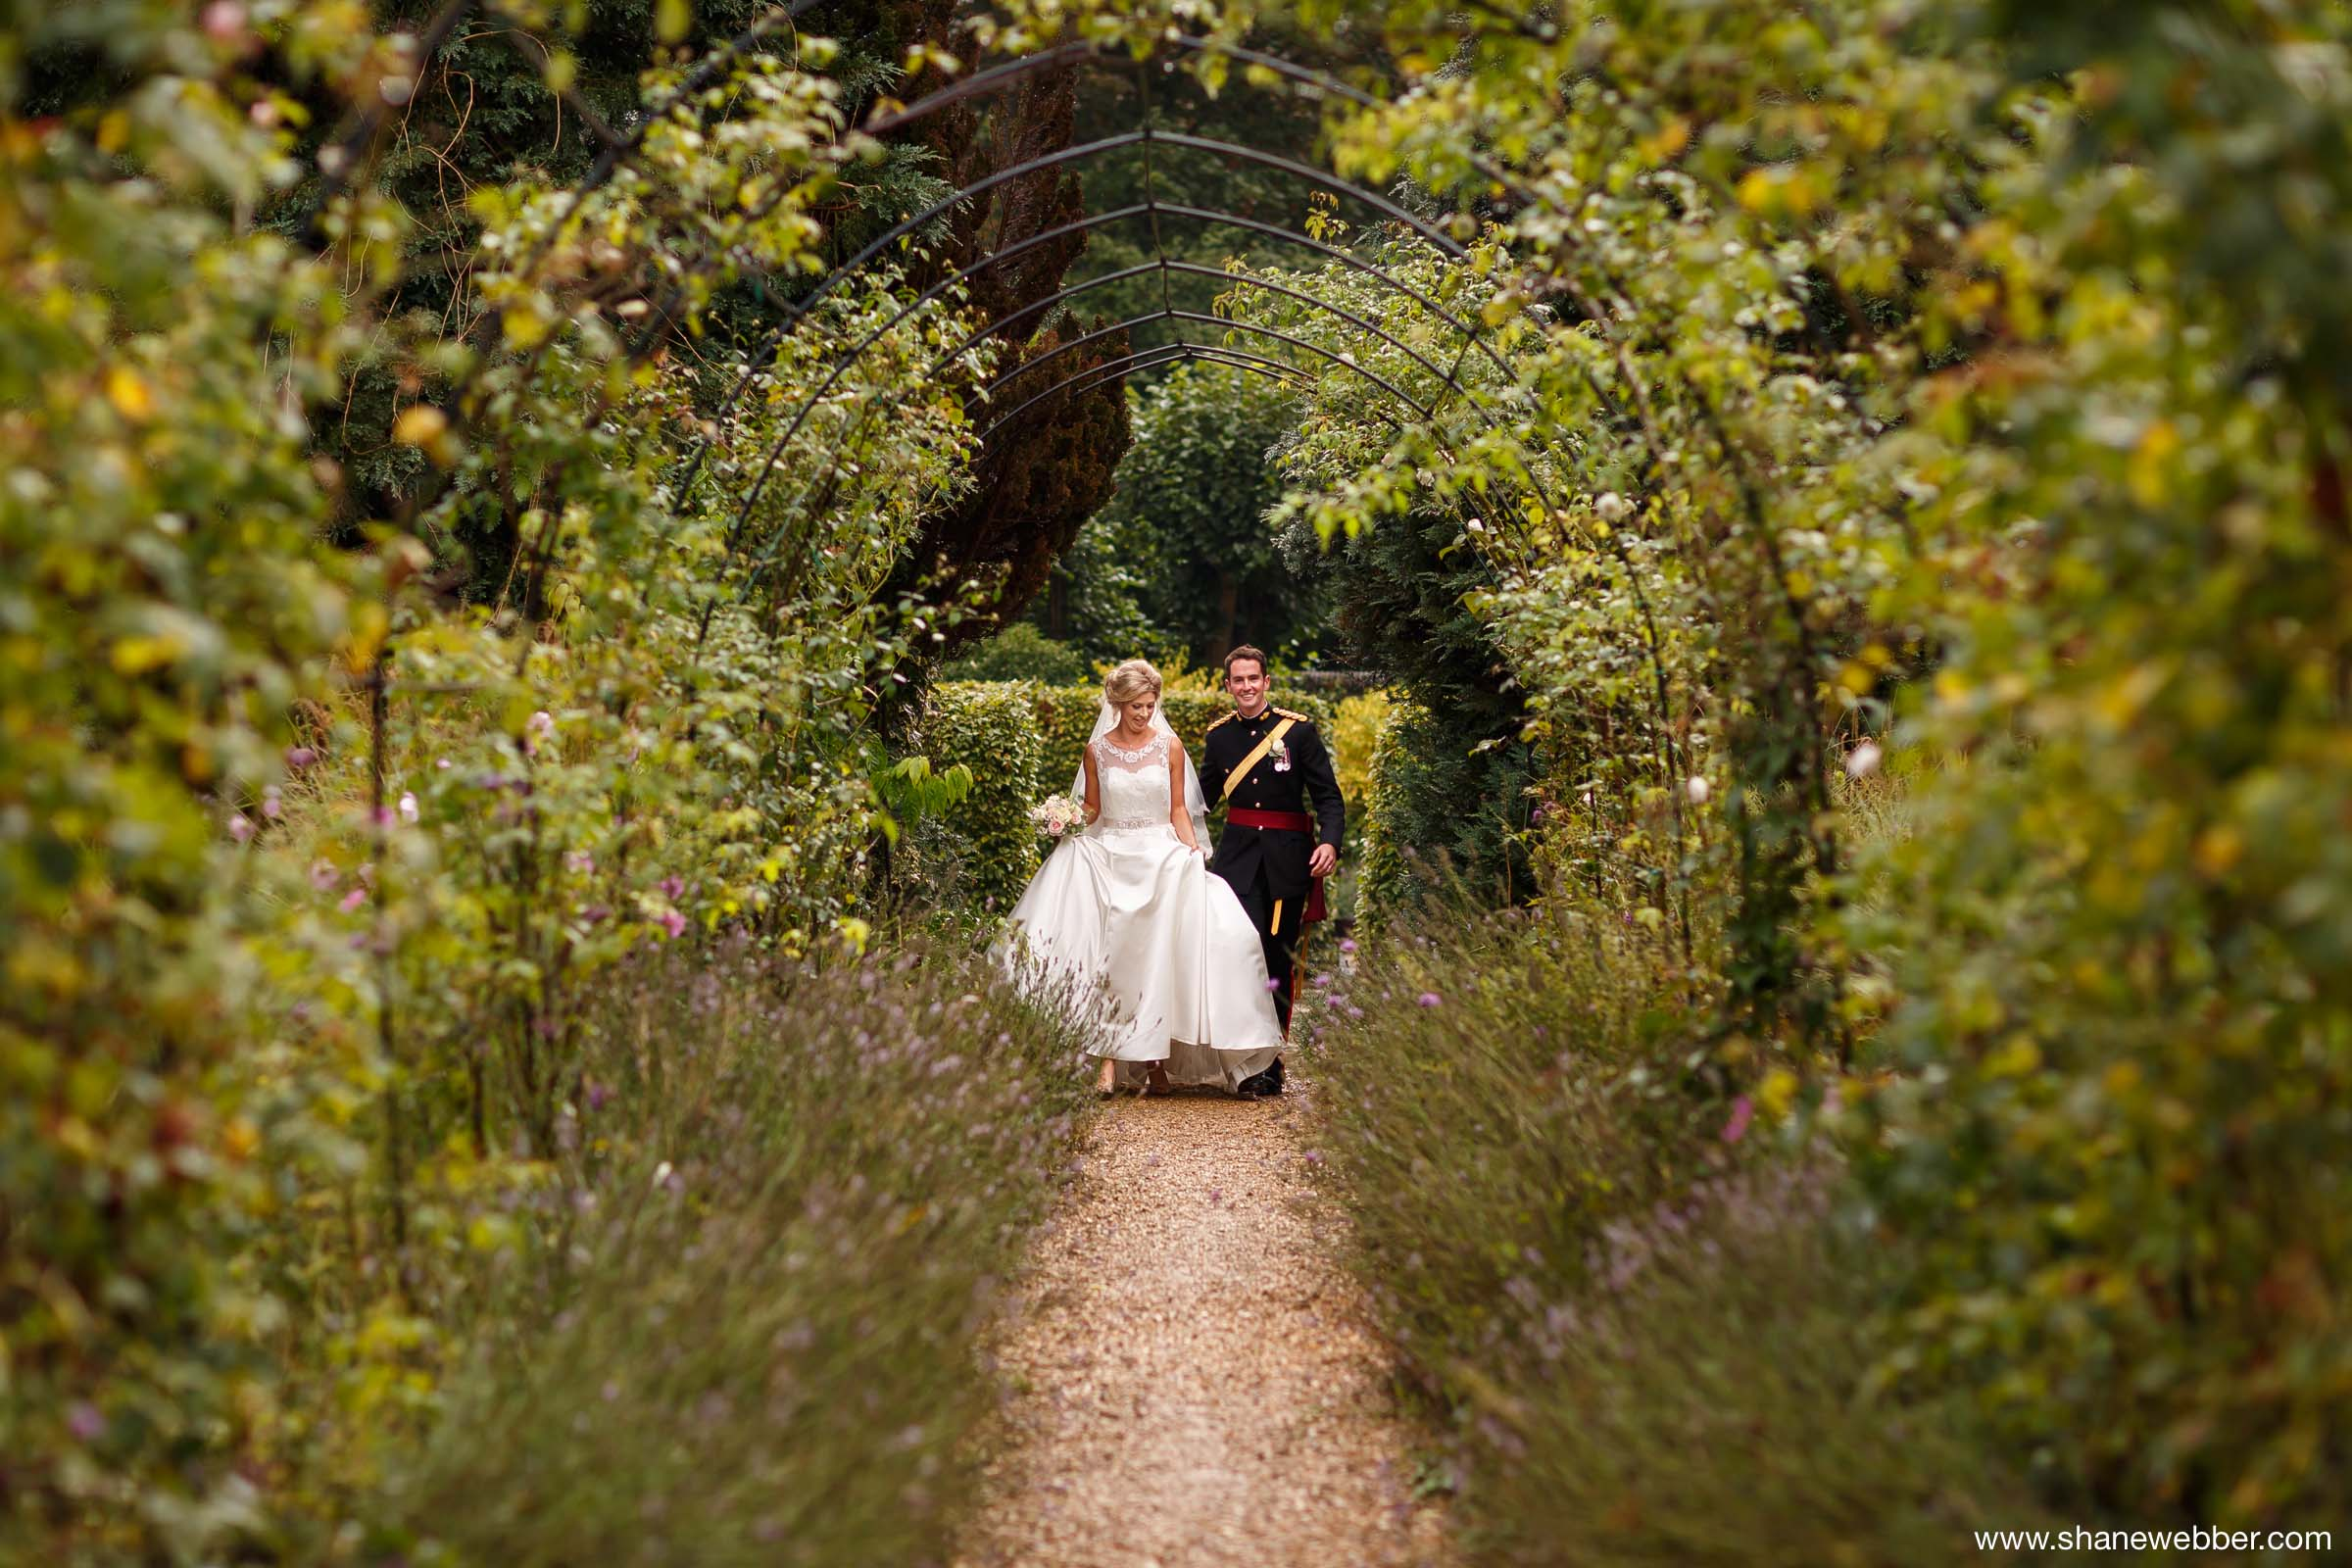 Autumn Wedding Photography at the William Cecil Stamford